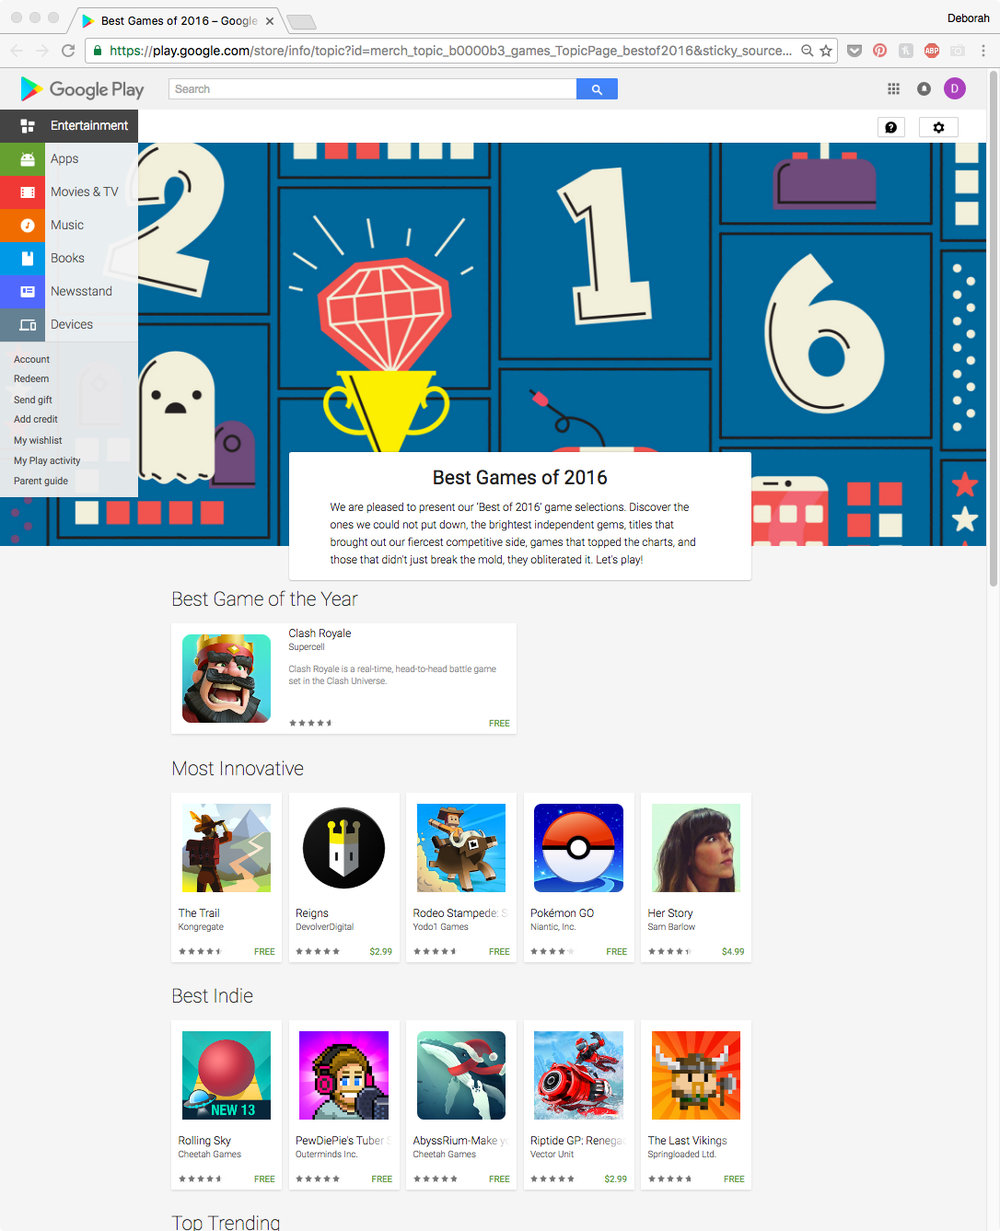 Dec 7 2016 - Google Play best indie games of 2016.jpeg